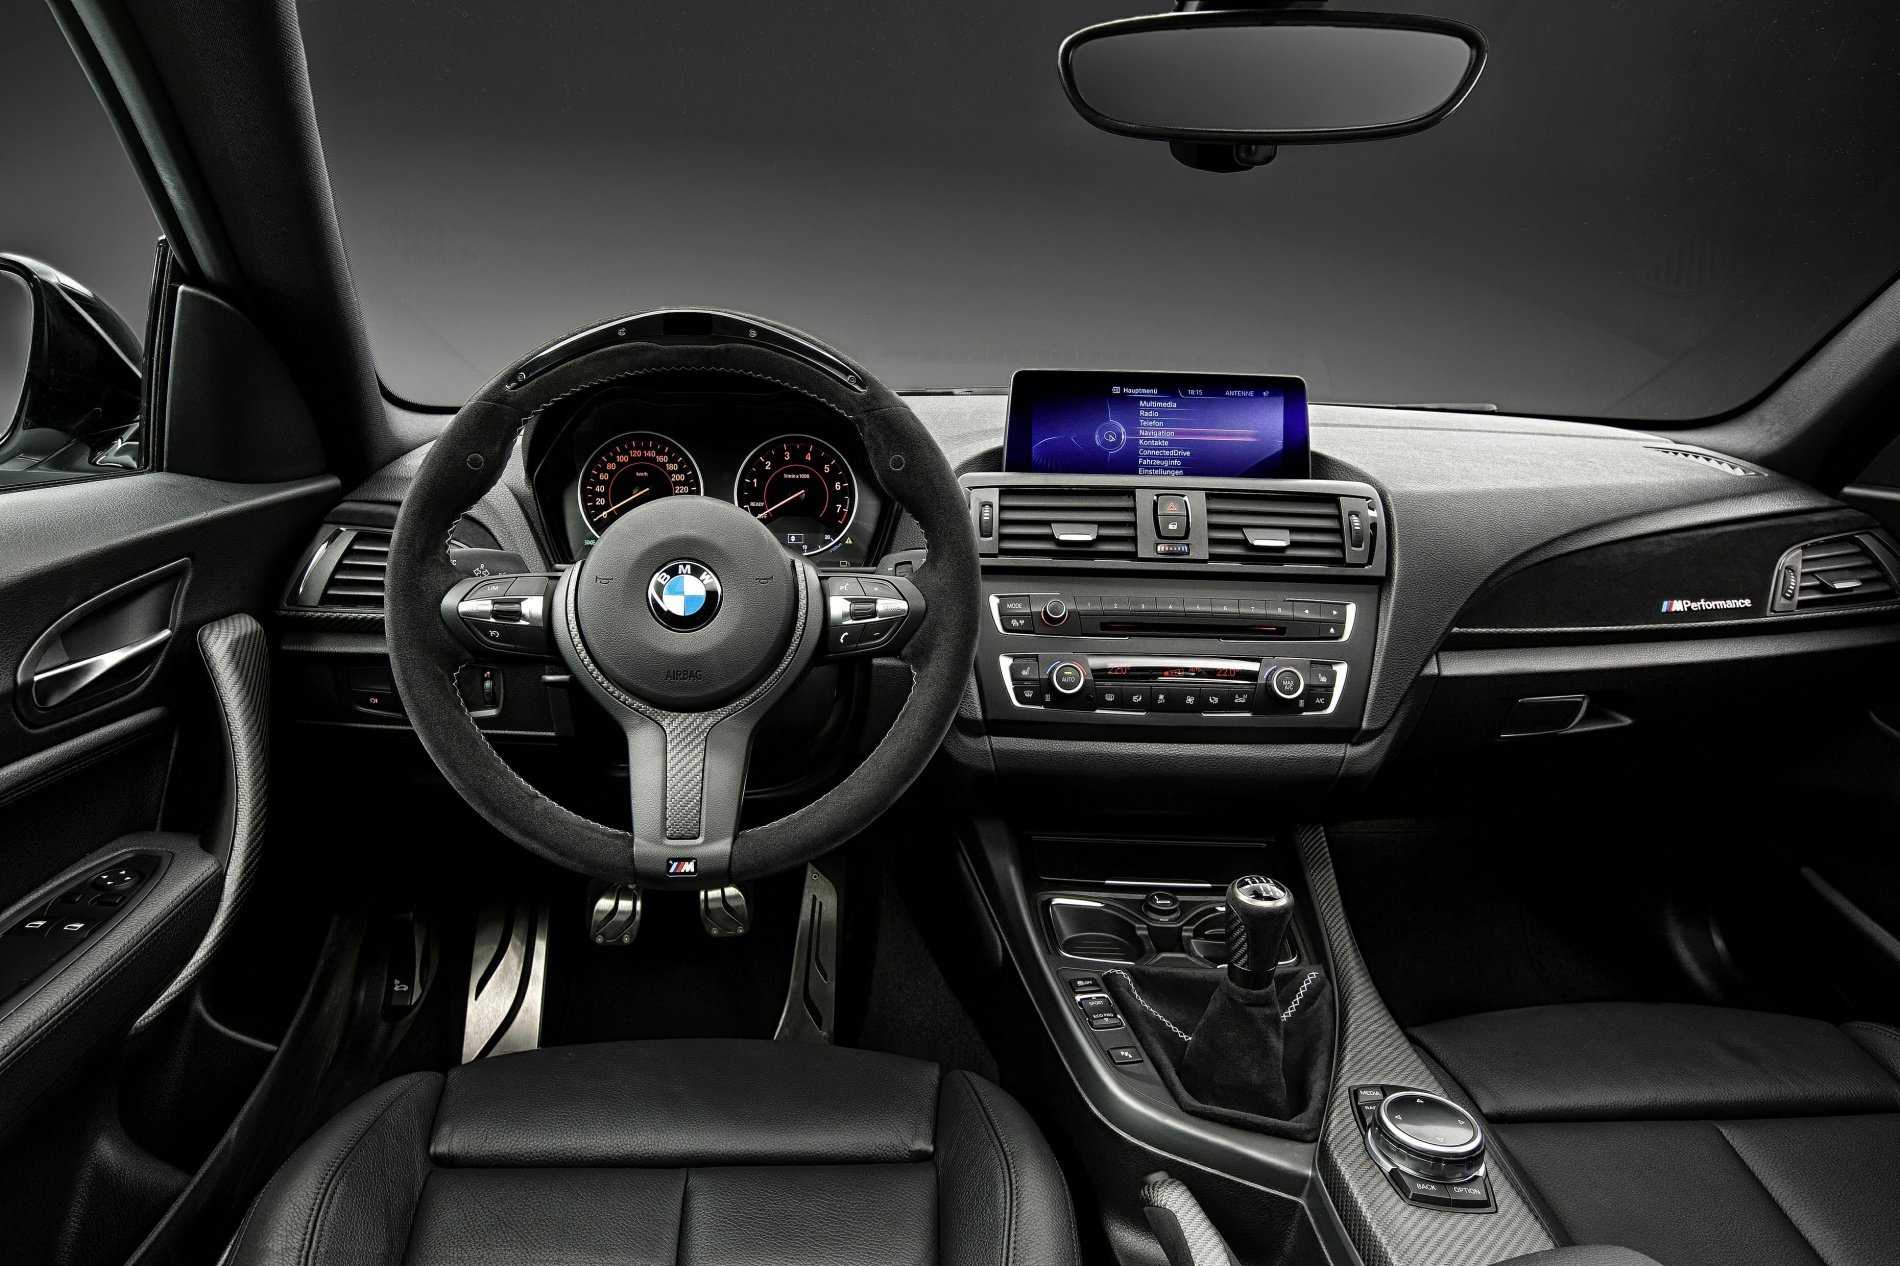 F30 Drivers    Is The Electric Steering Really THAT Bad? 2 Series